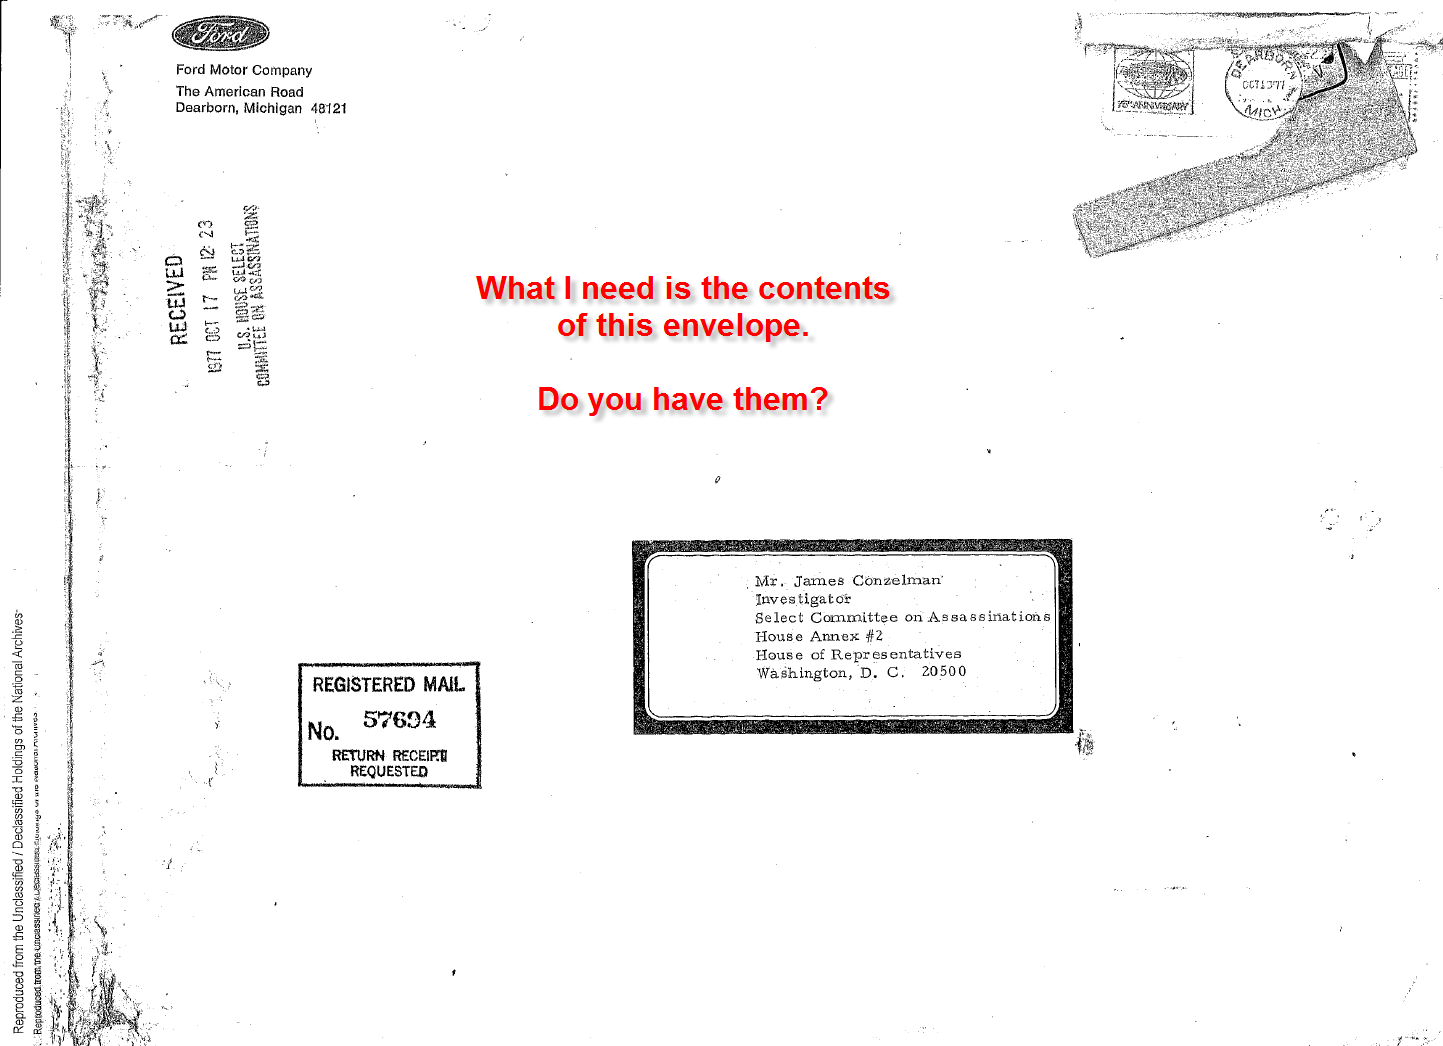 Limo-Blueprints-Is-This-Envelope-Empty